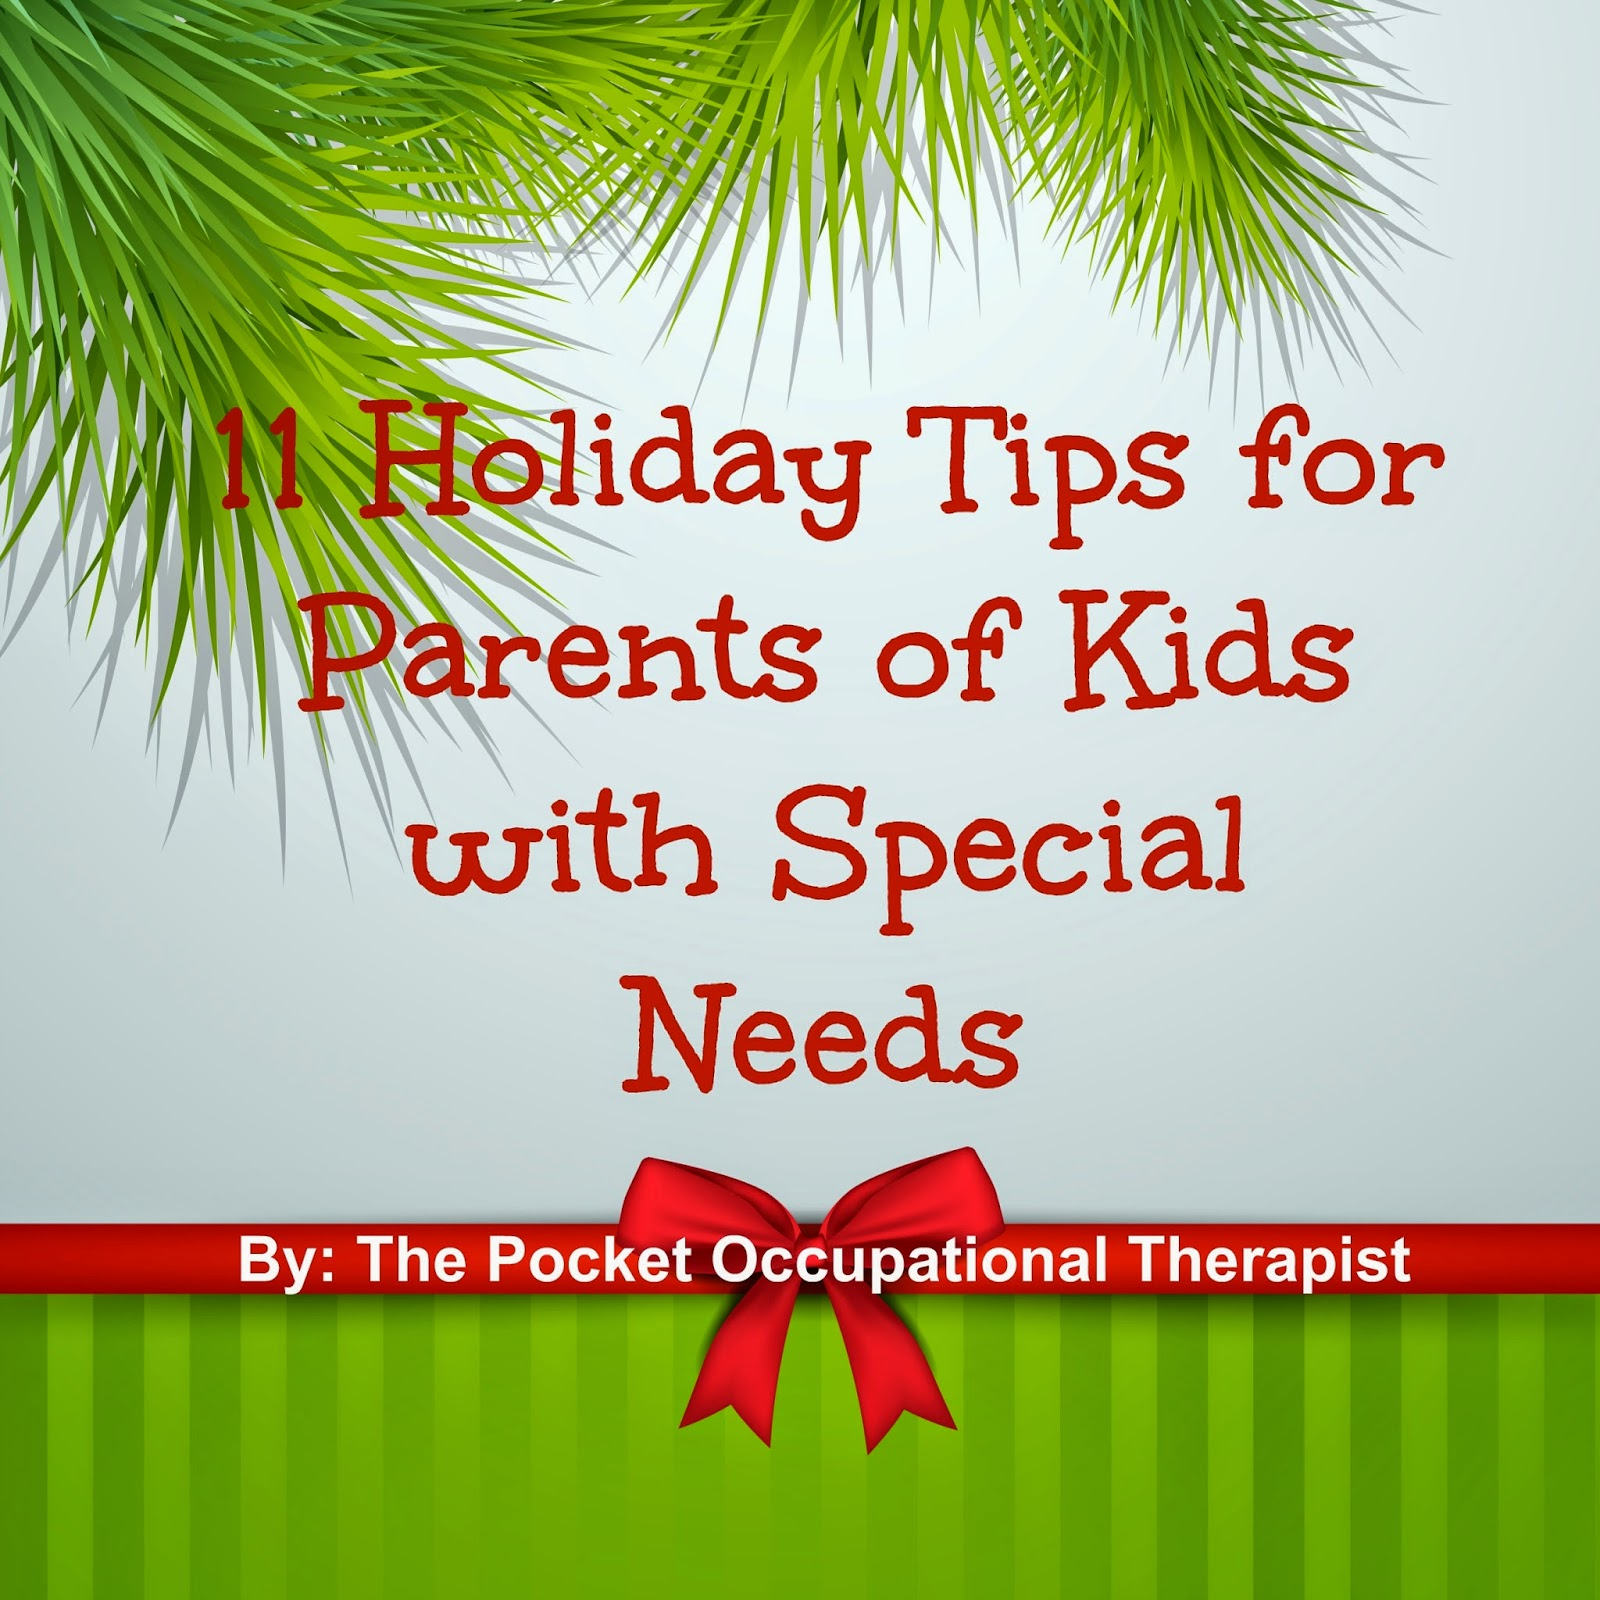 http://thepocketot.blogspot.com/2014/11/11-holiday-tips-for-parents-of-kids.html